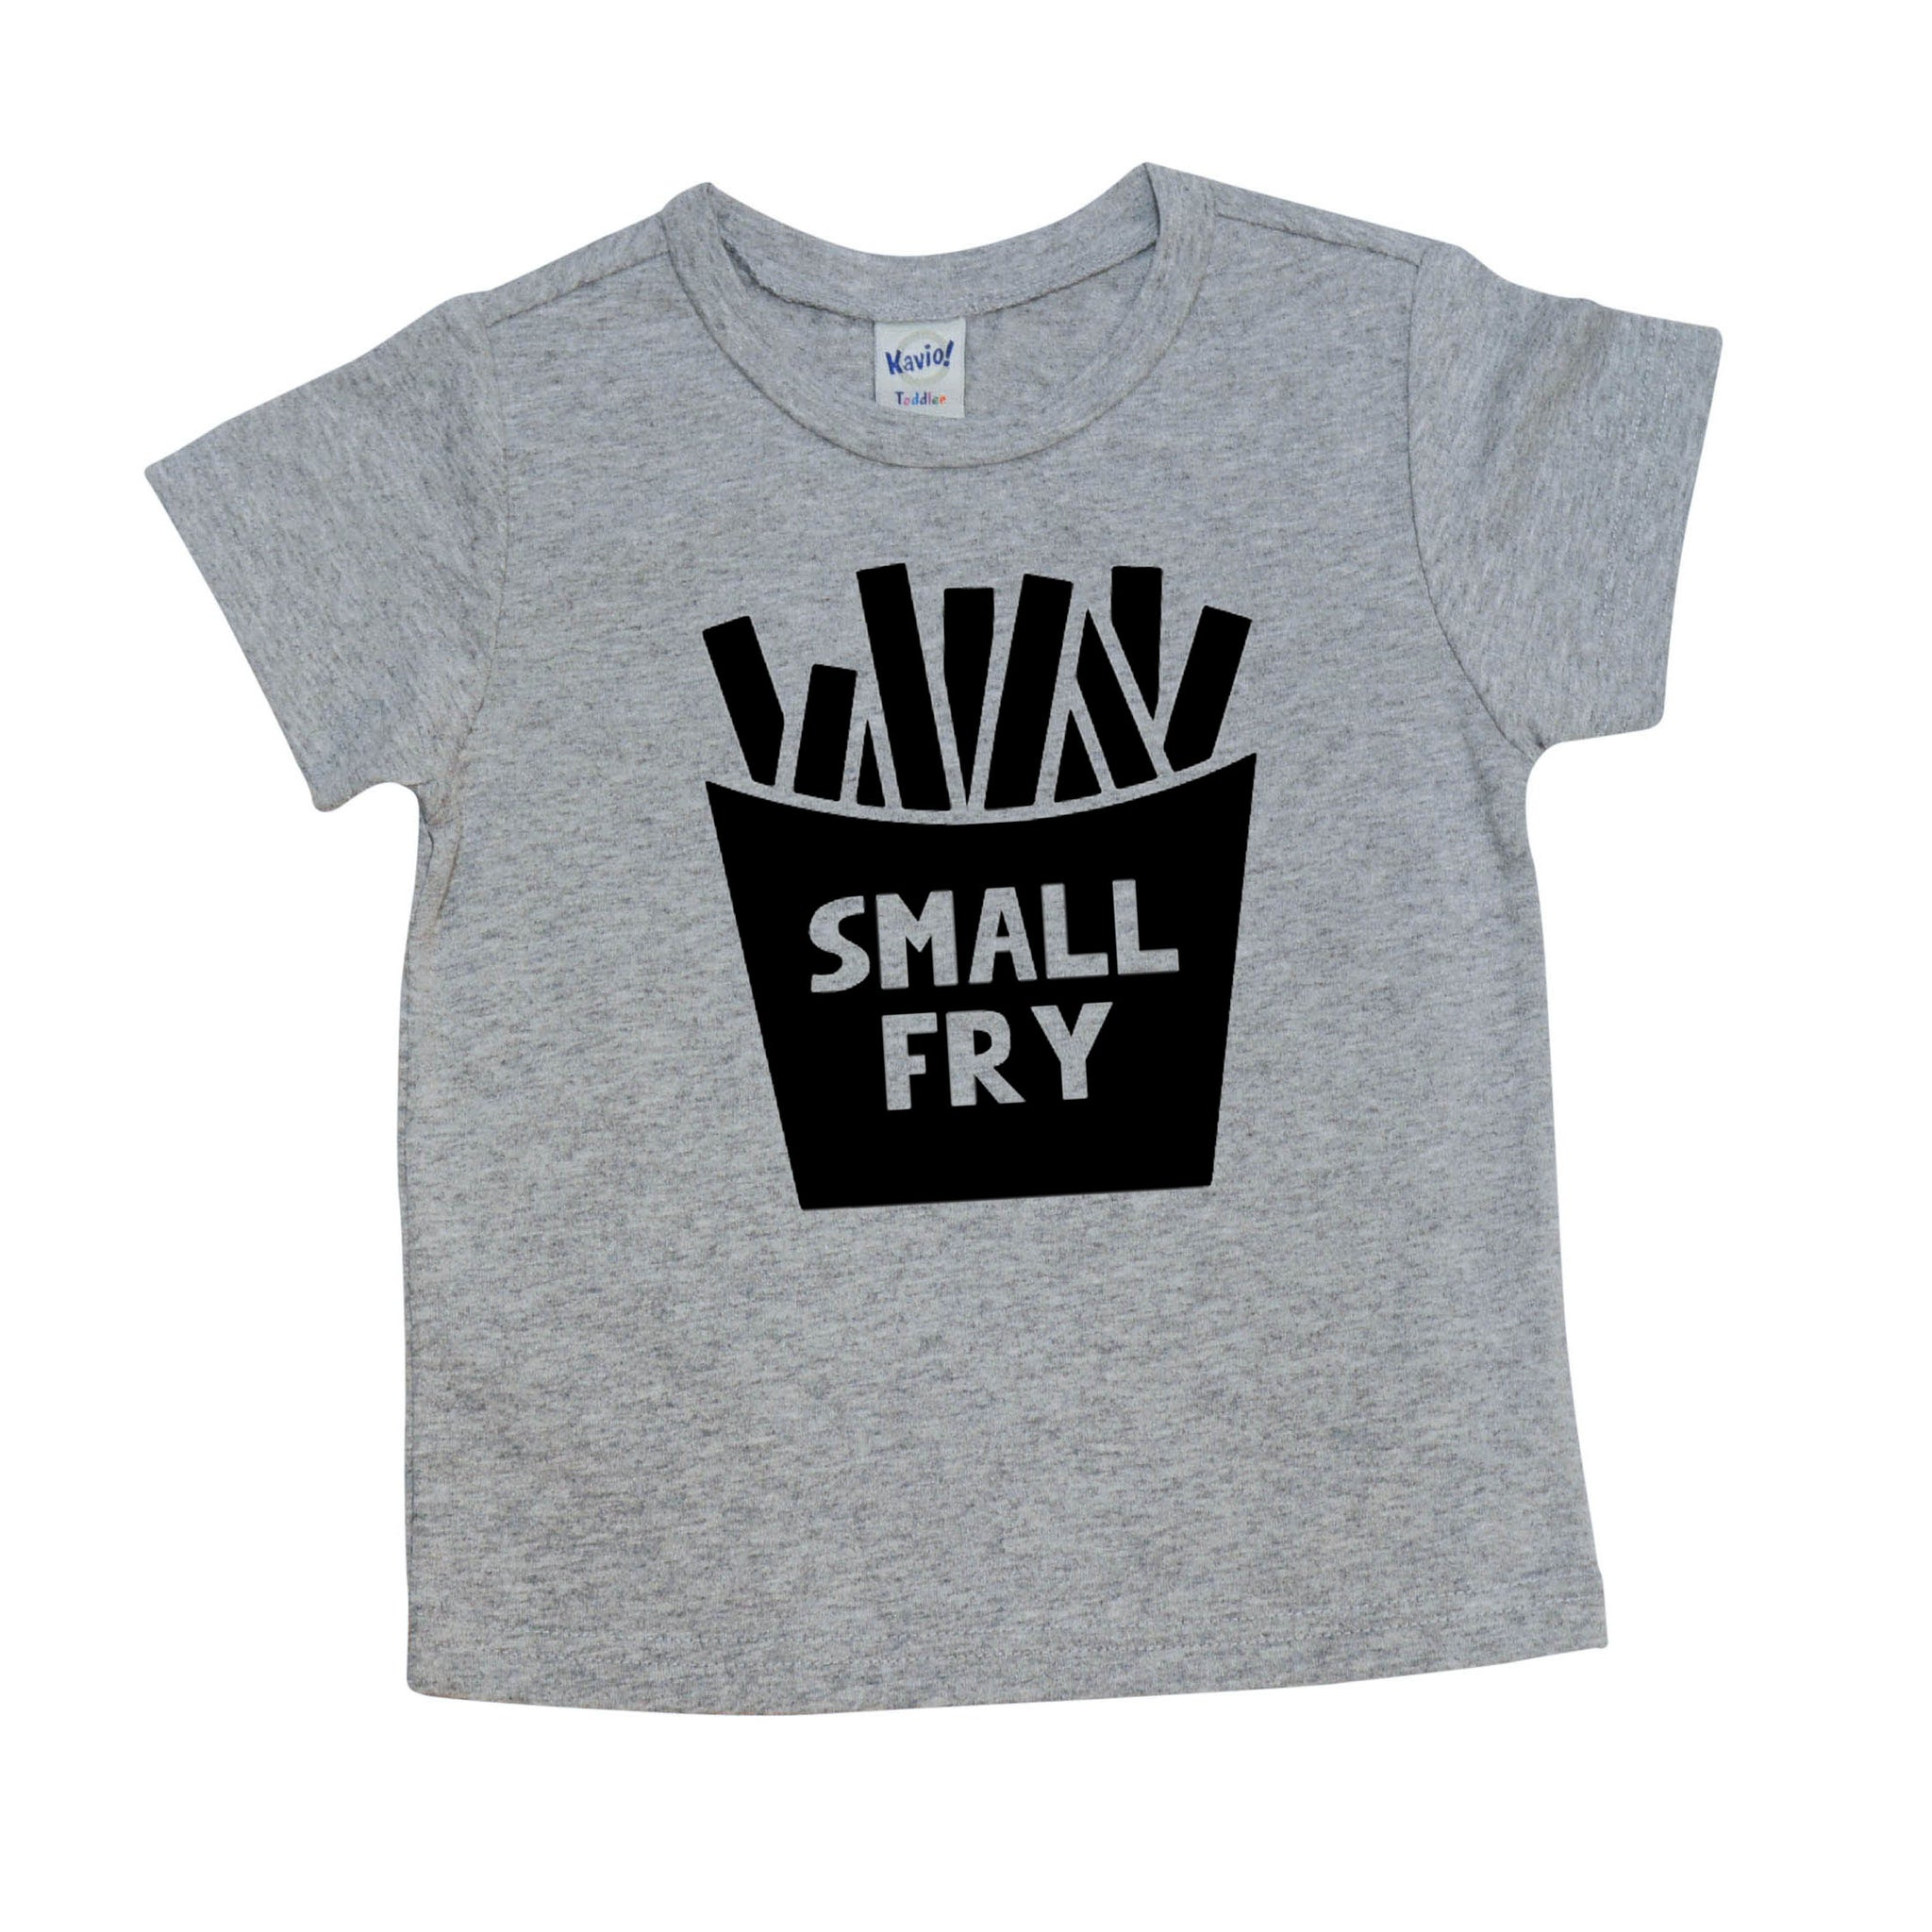 Small Fry Shirt, Pregnancy Announcement, Sibling Shirt Girl or Boy 553